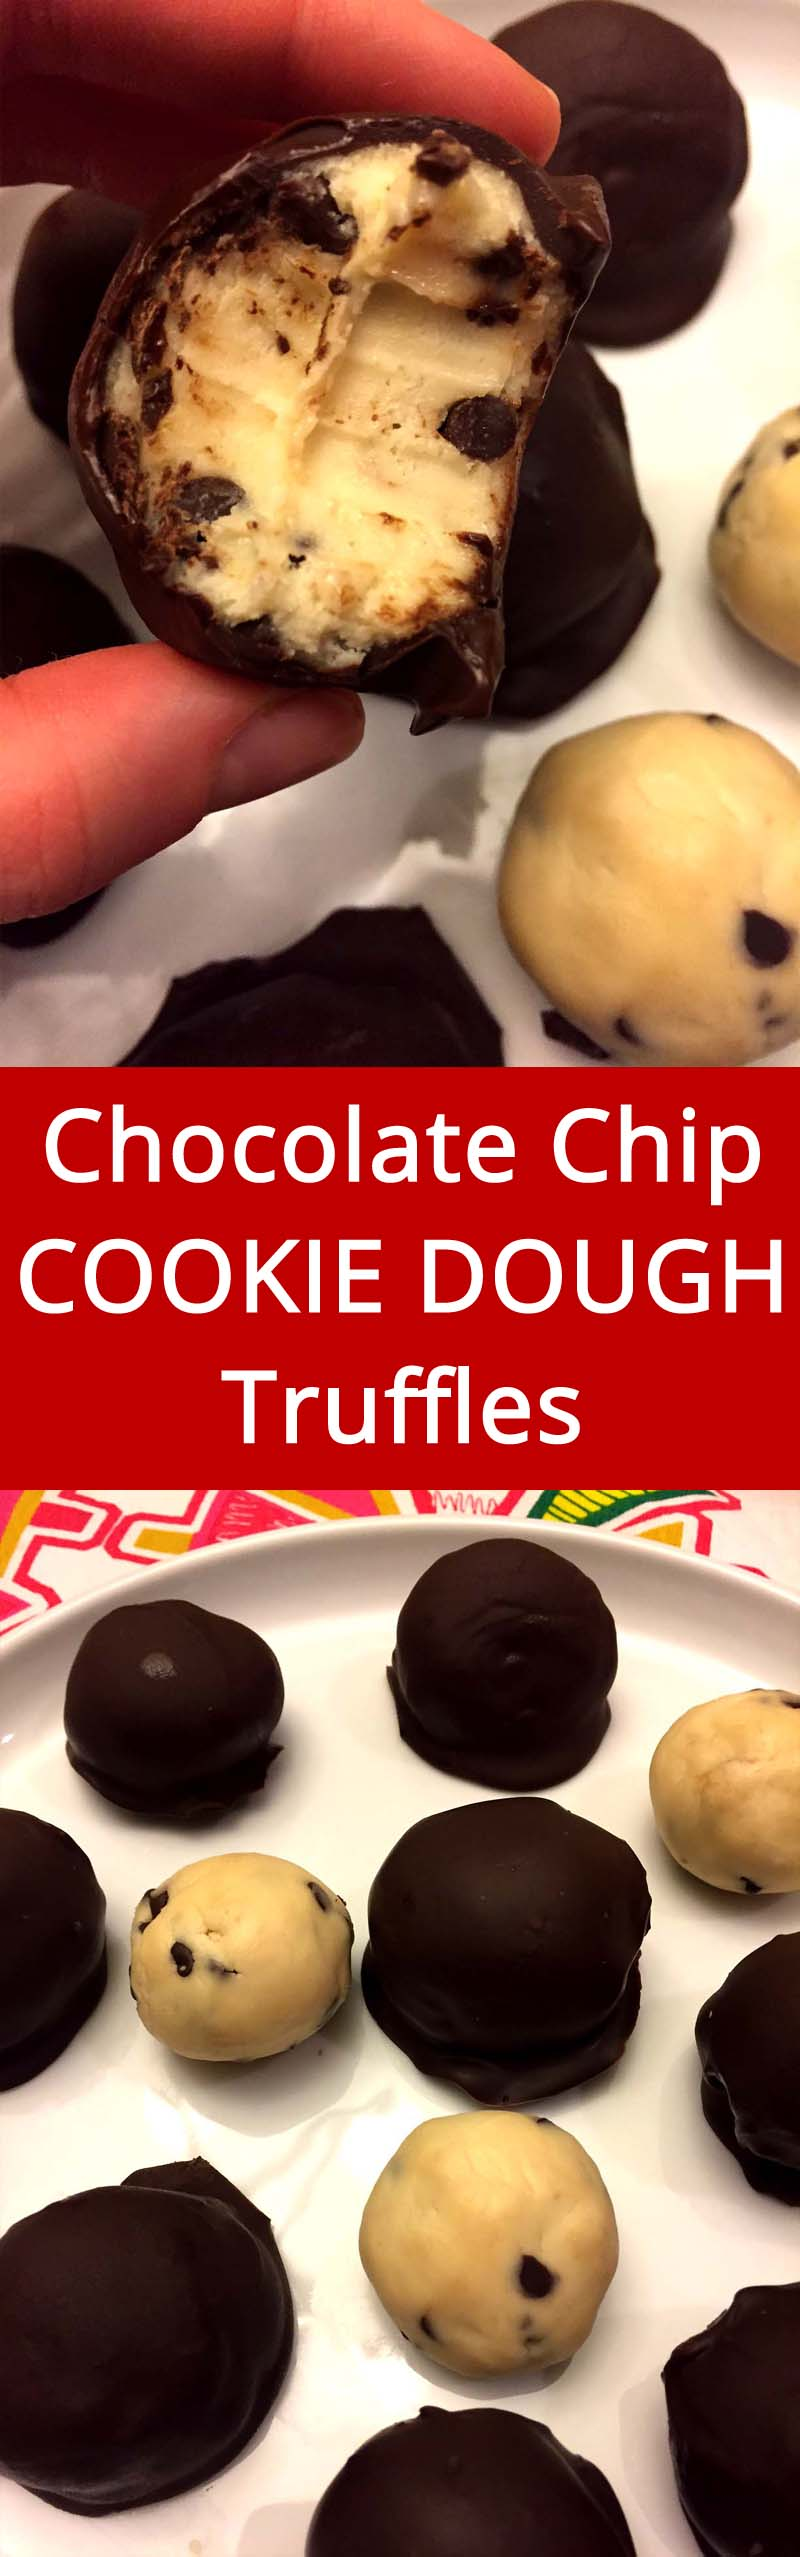 OMG the cookie dough lover's heaven!  These truffles are genius!  LOVE LOVE LOVE!